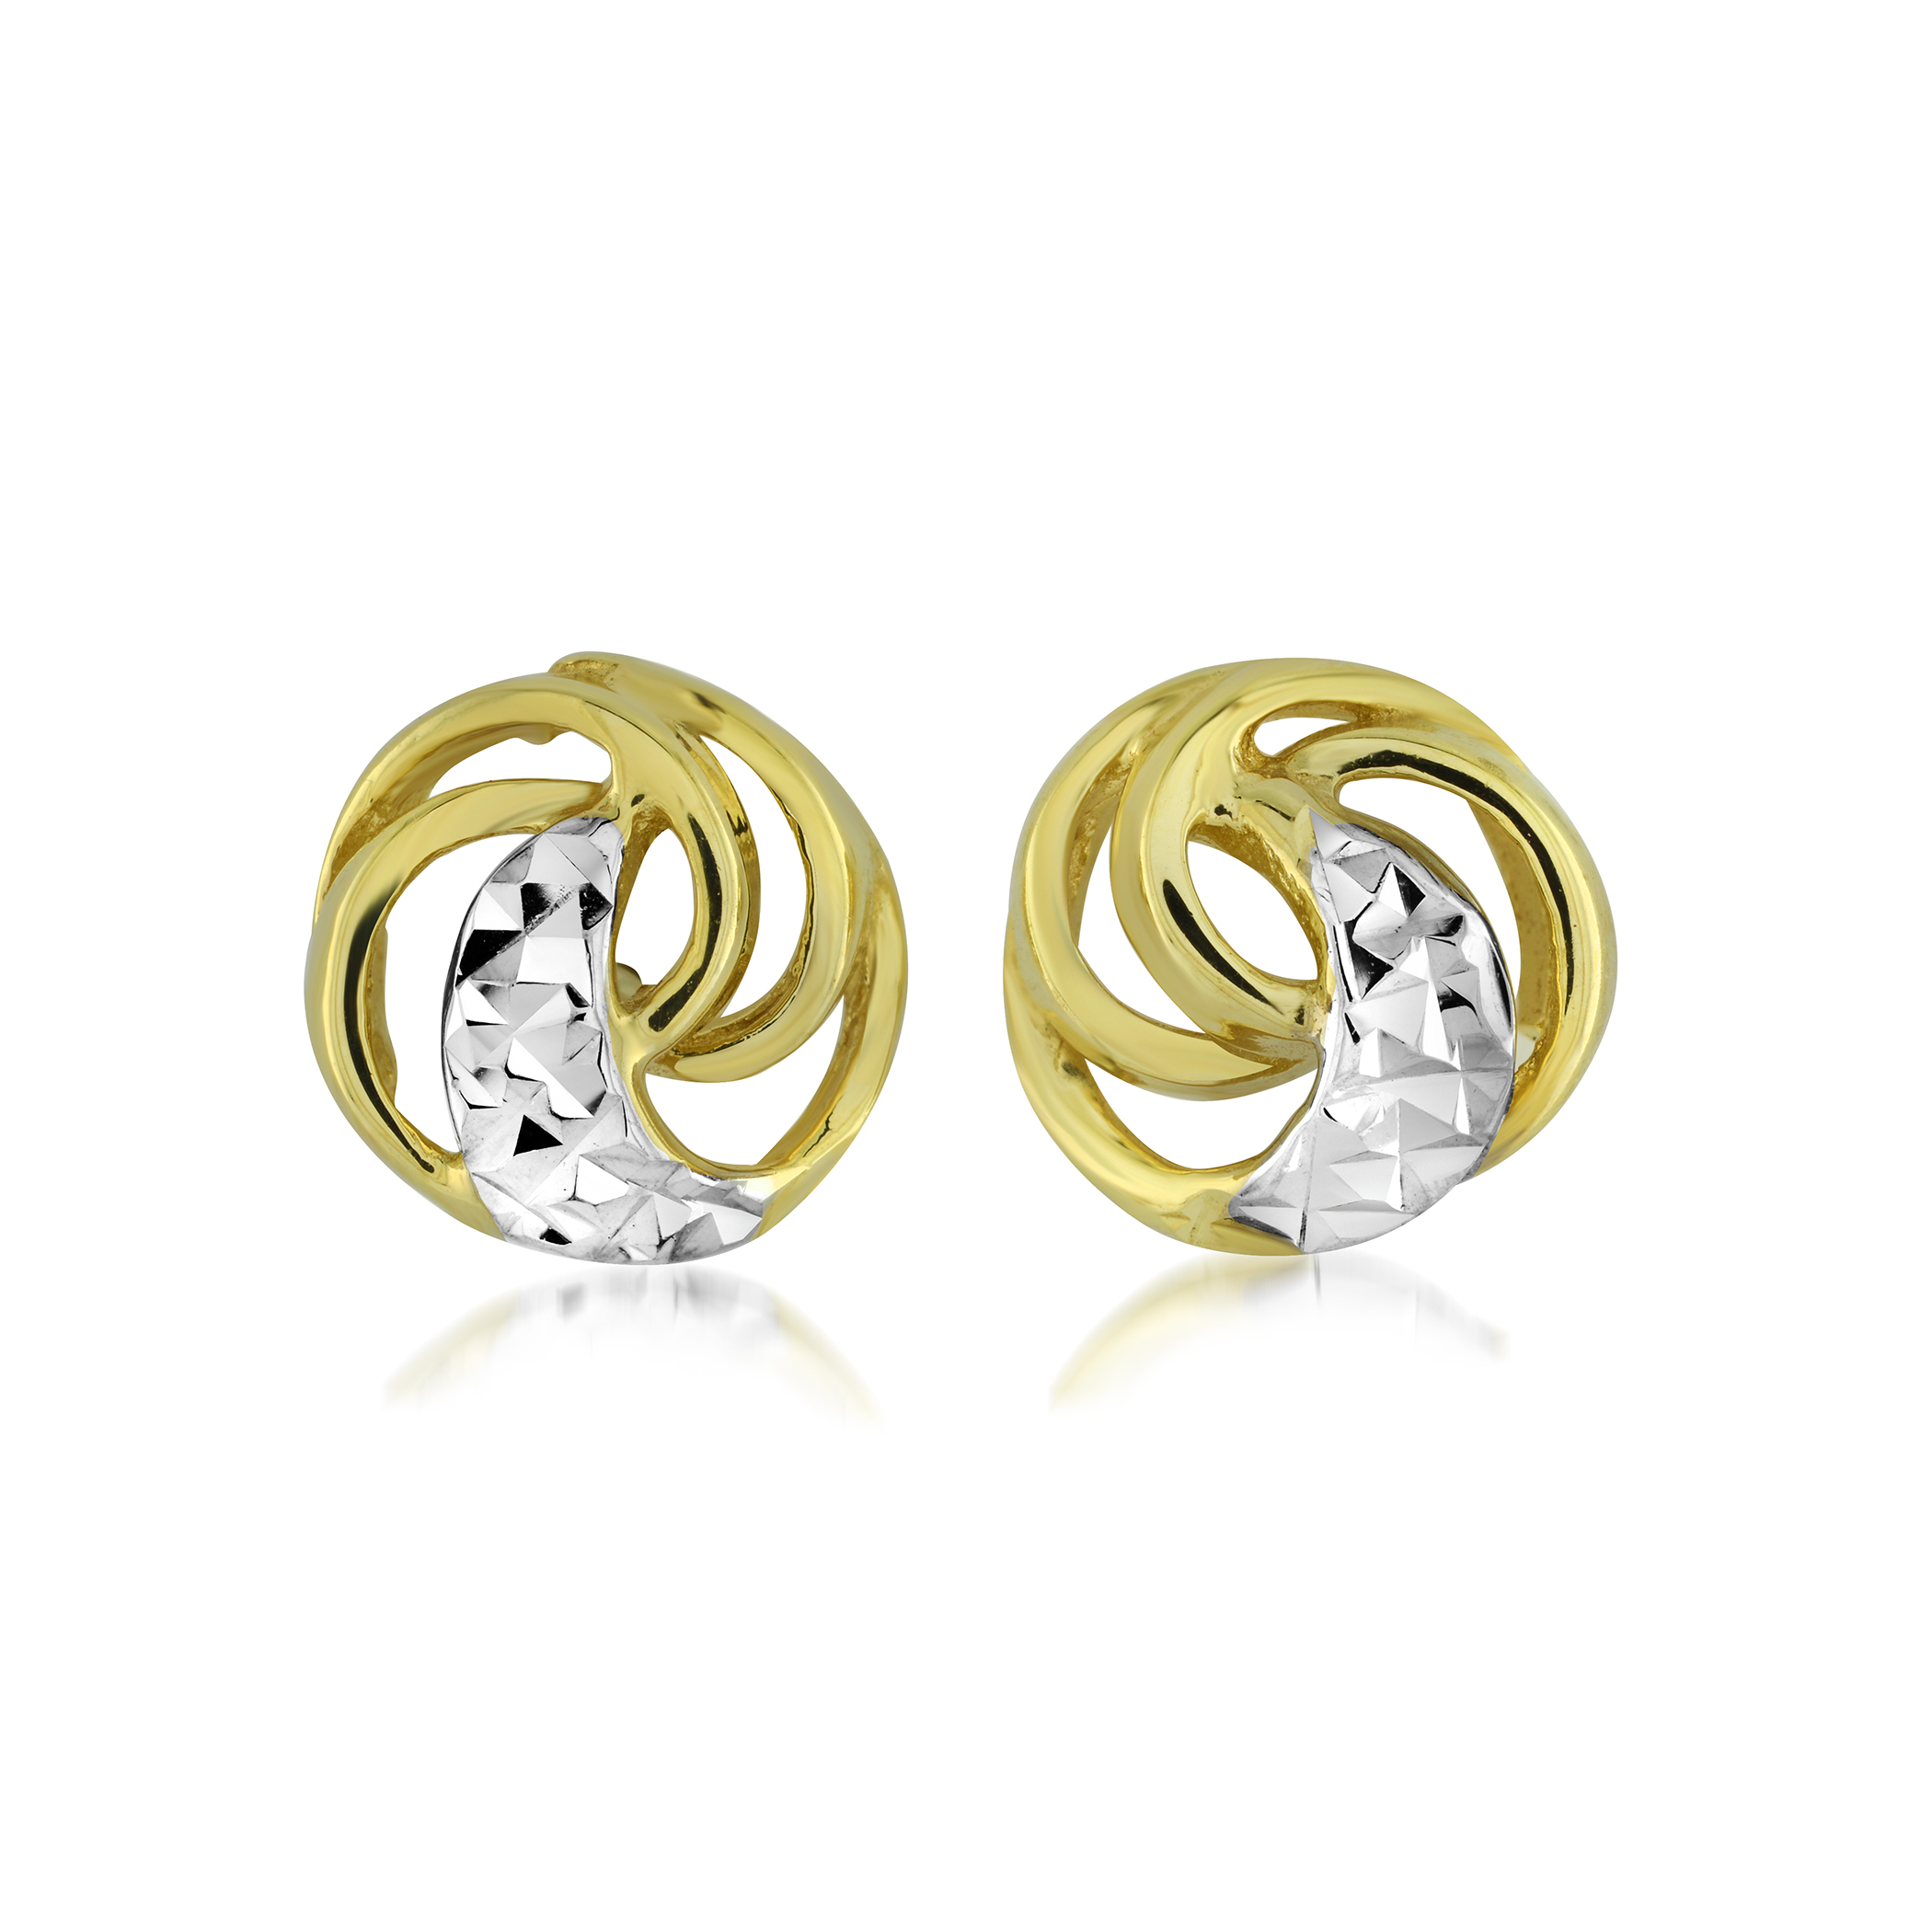 Knot earrings for kids - 10K 2-tone Gold